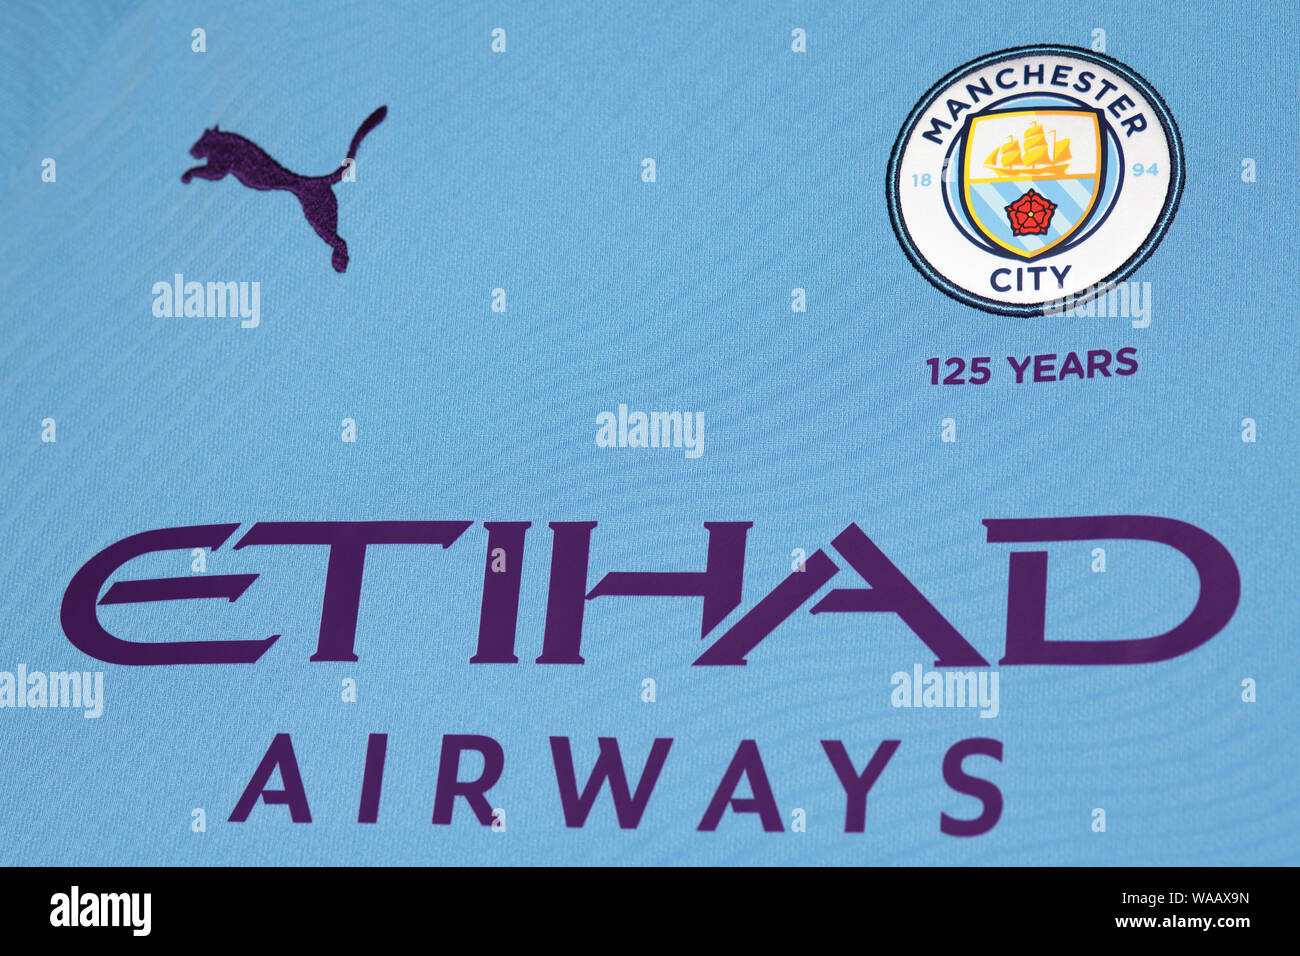 Close Up Manchester City Insignia High Resolution Stock Photography And Images Alamy